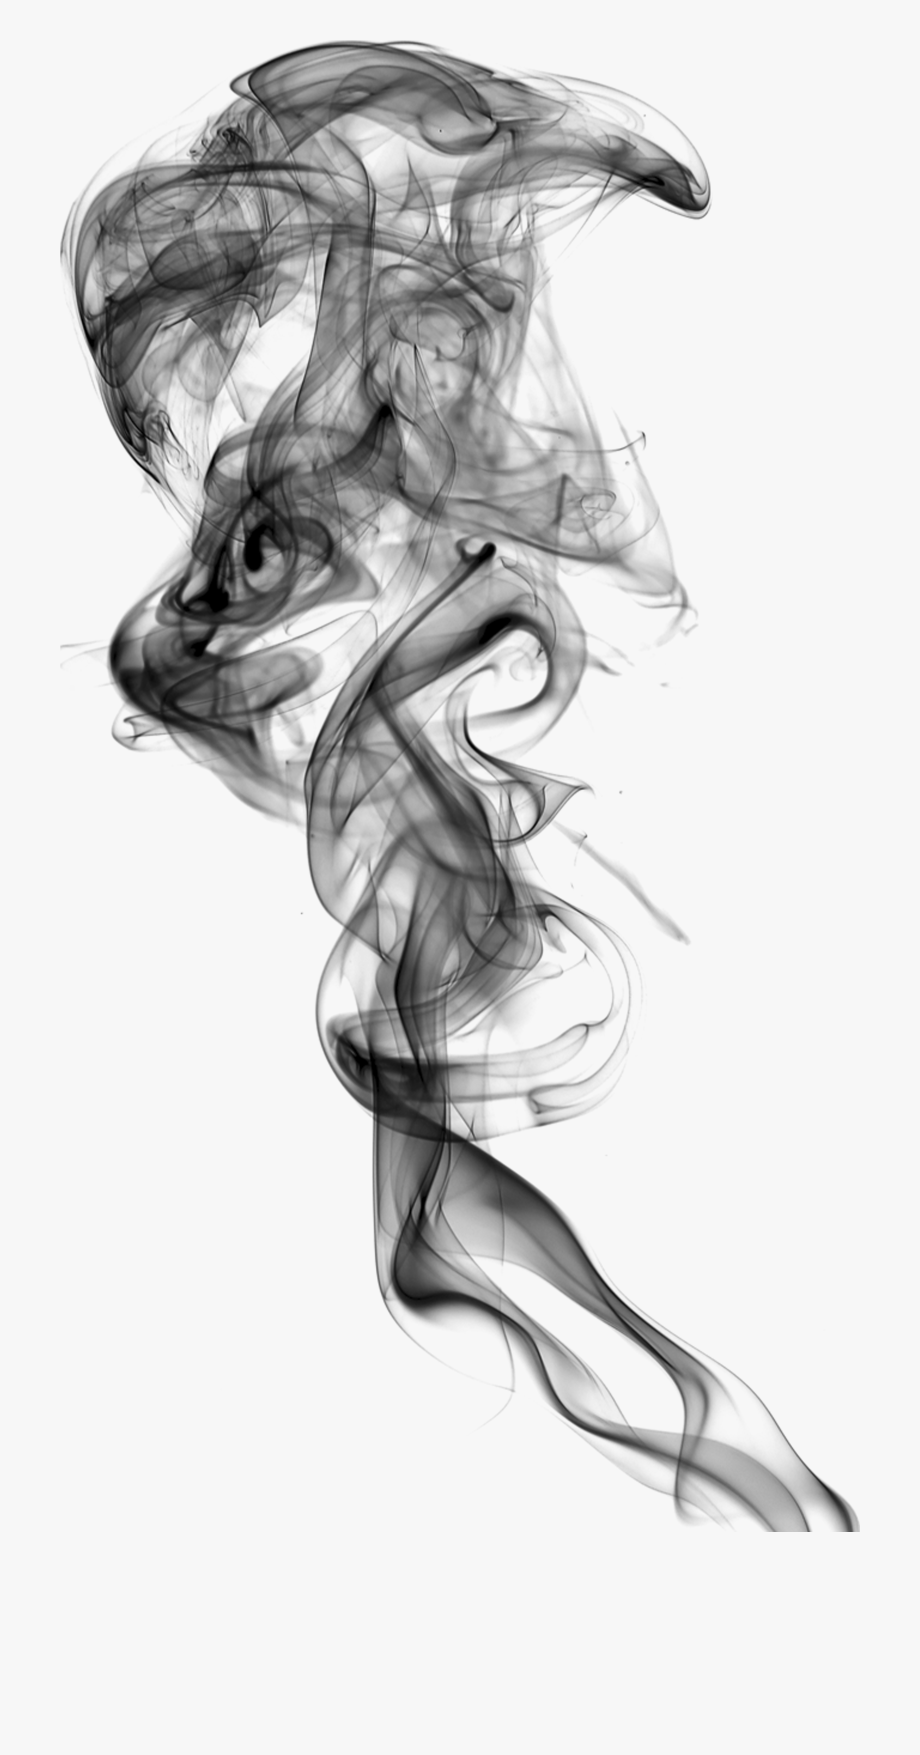 Smoking Off Mist Transprent Png Free Download.